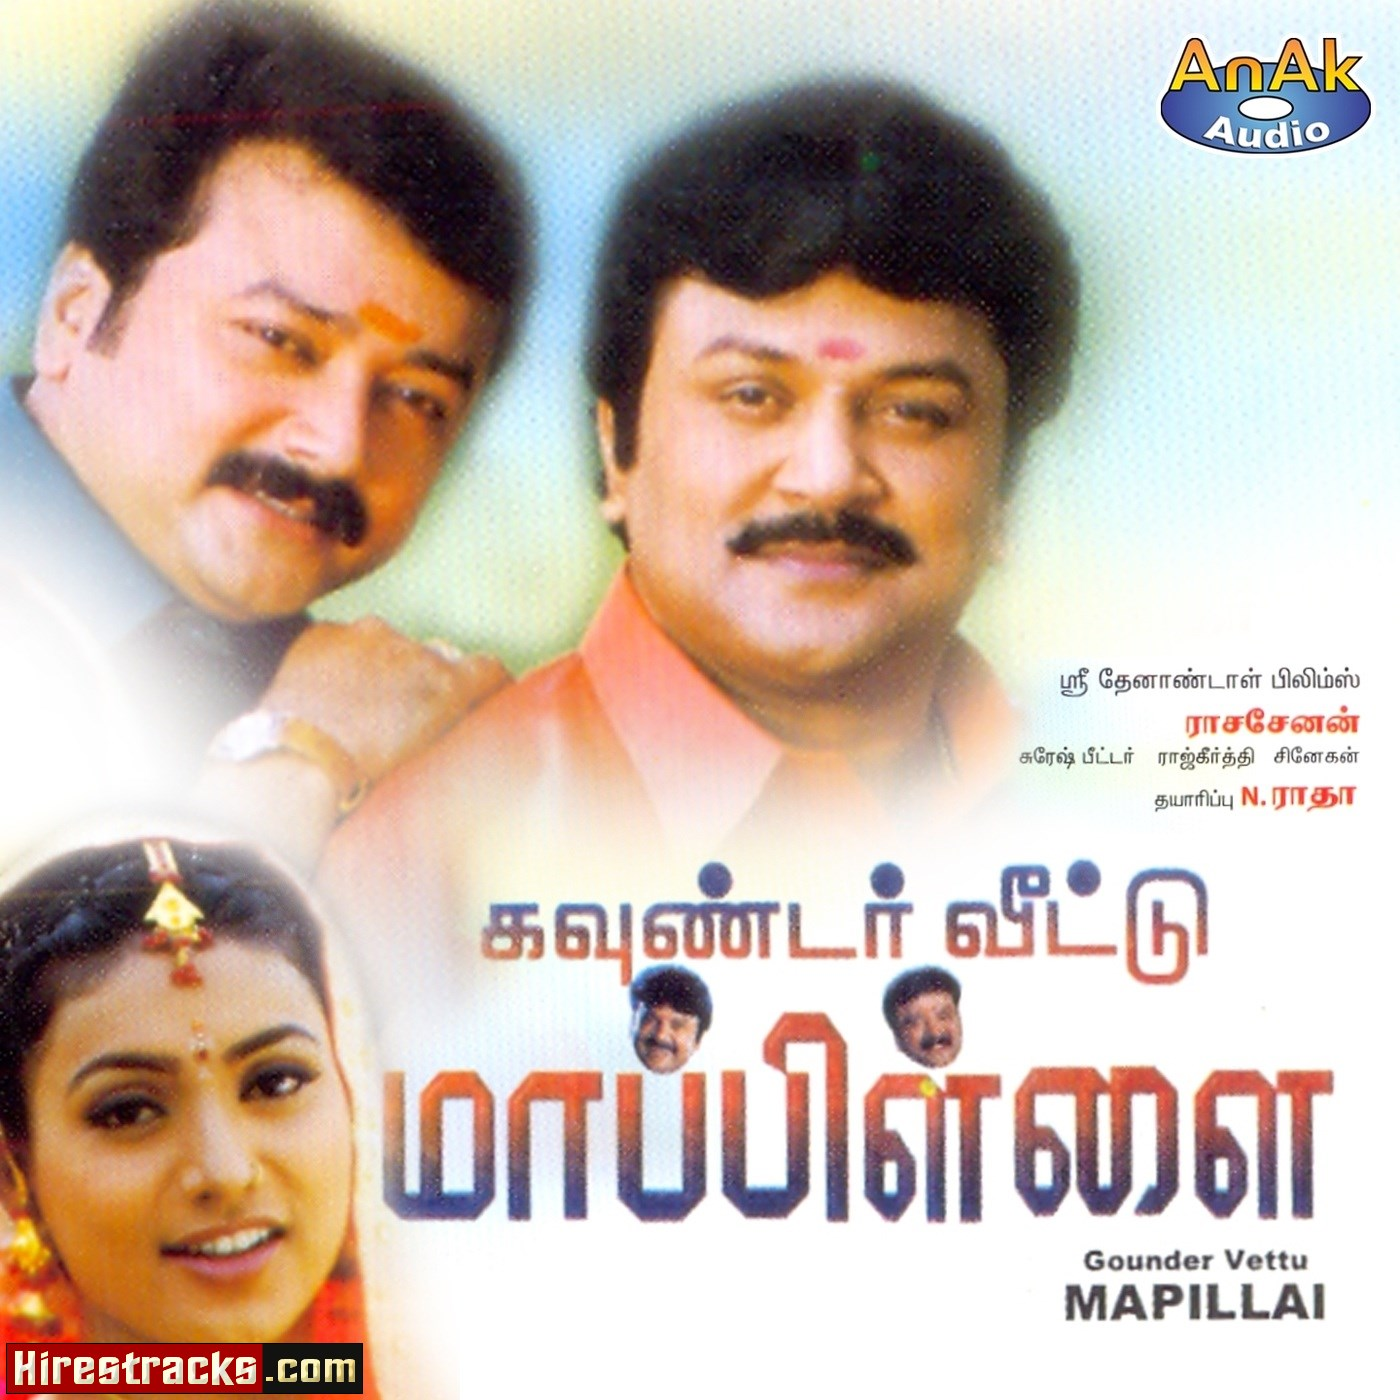 Gounder Veettu Mappillai (2002) (Suresh Peters) (Anak Audio) [Digital-DL-FLAC]